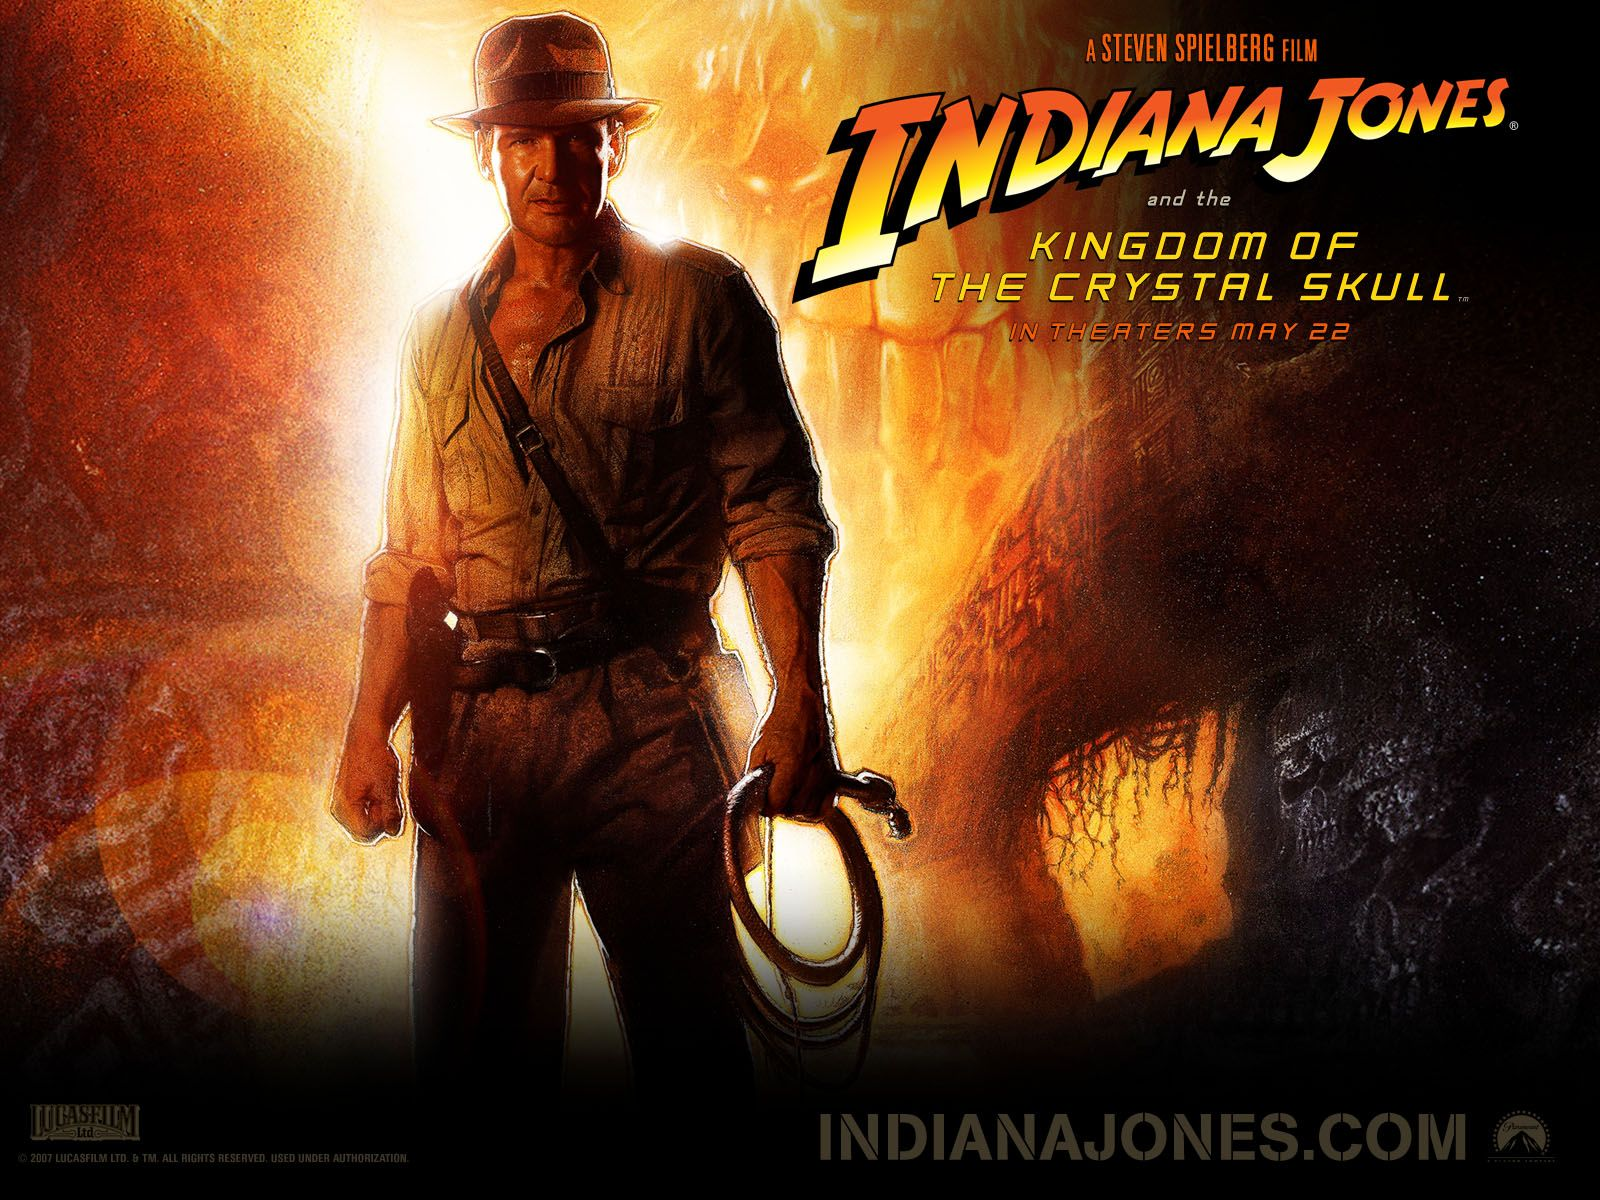 indiana-jones-series_puzzling-movies